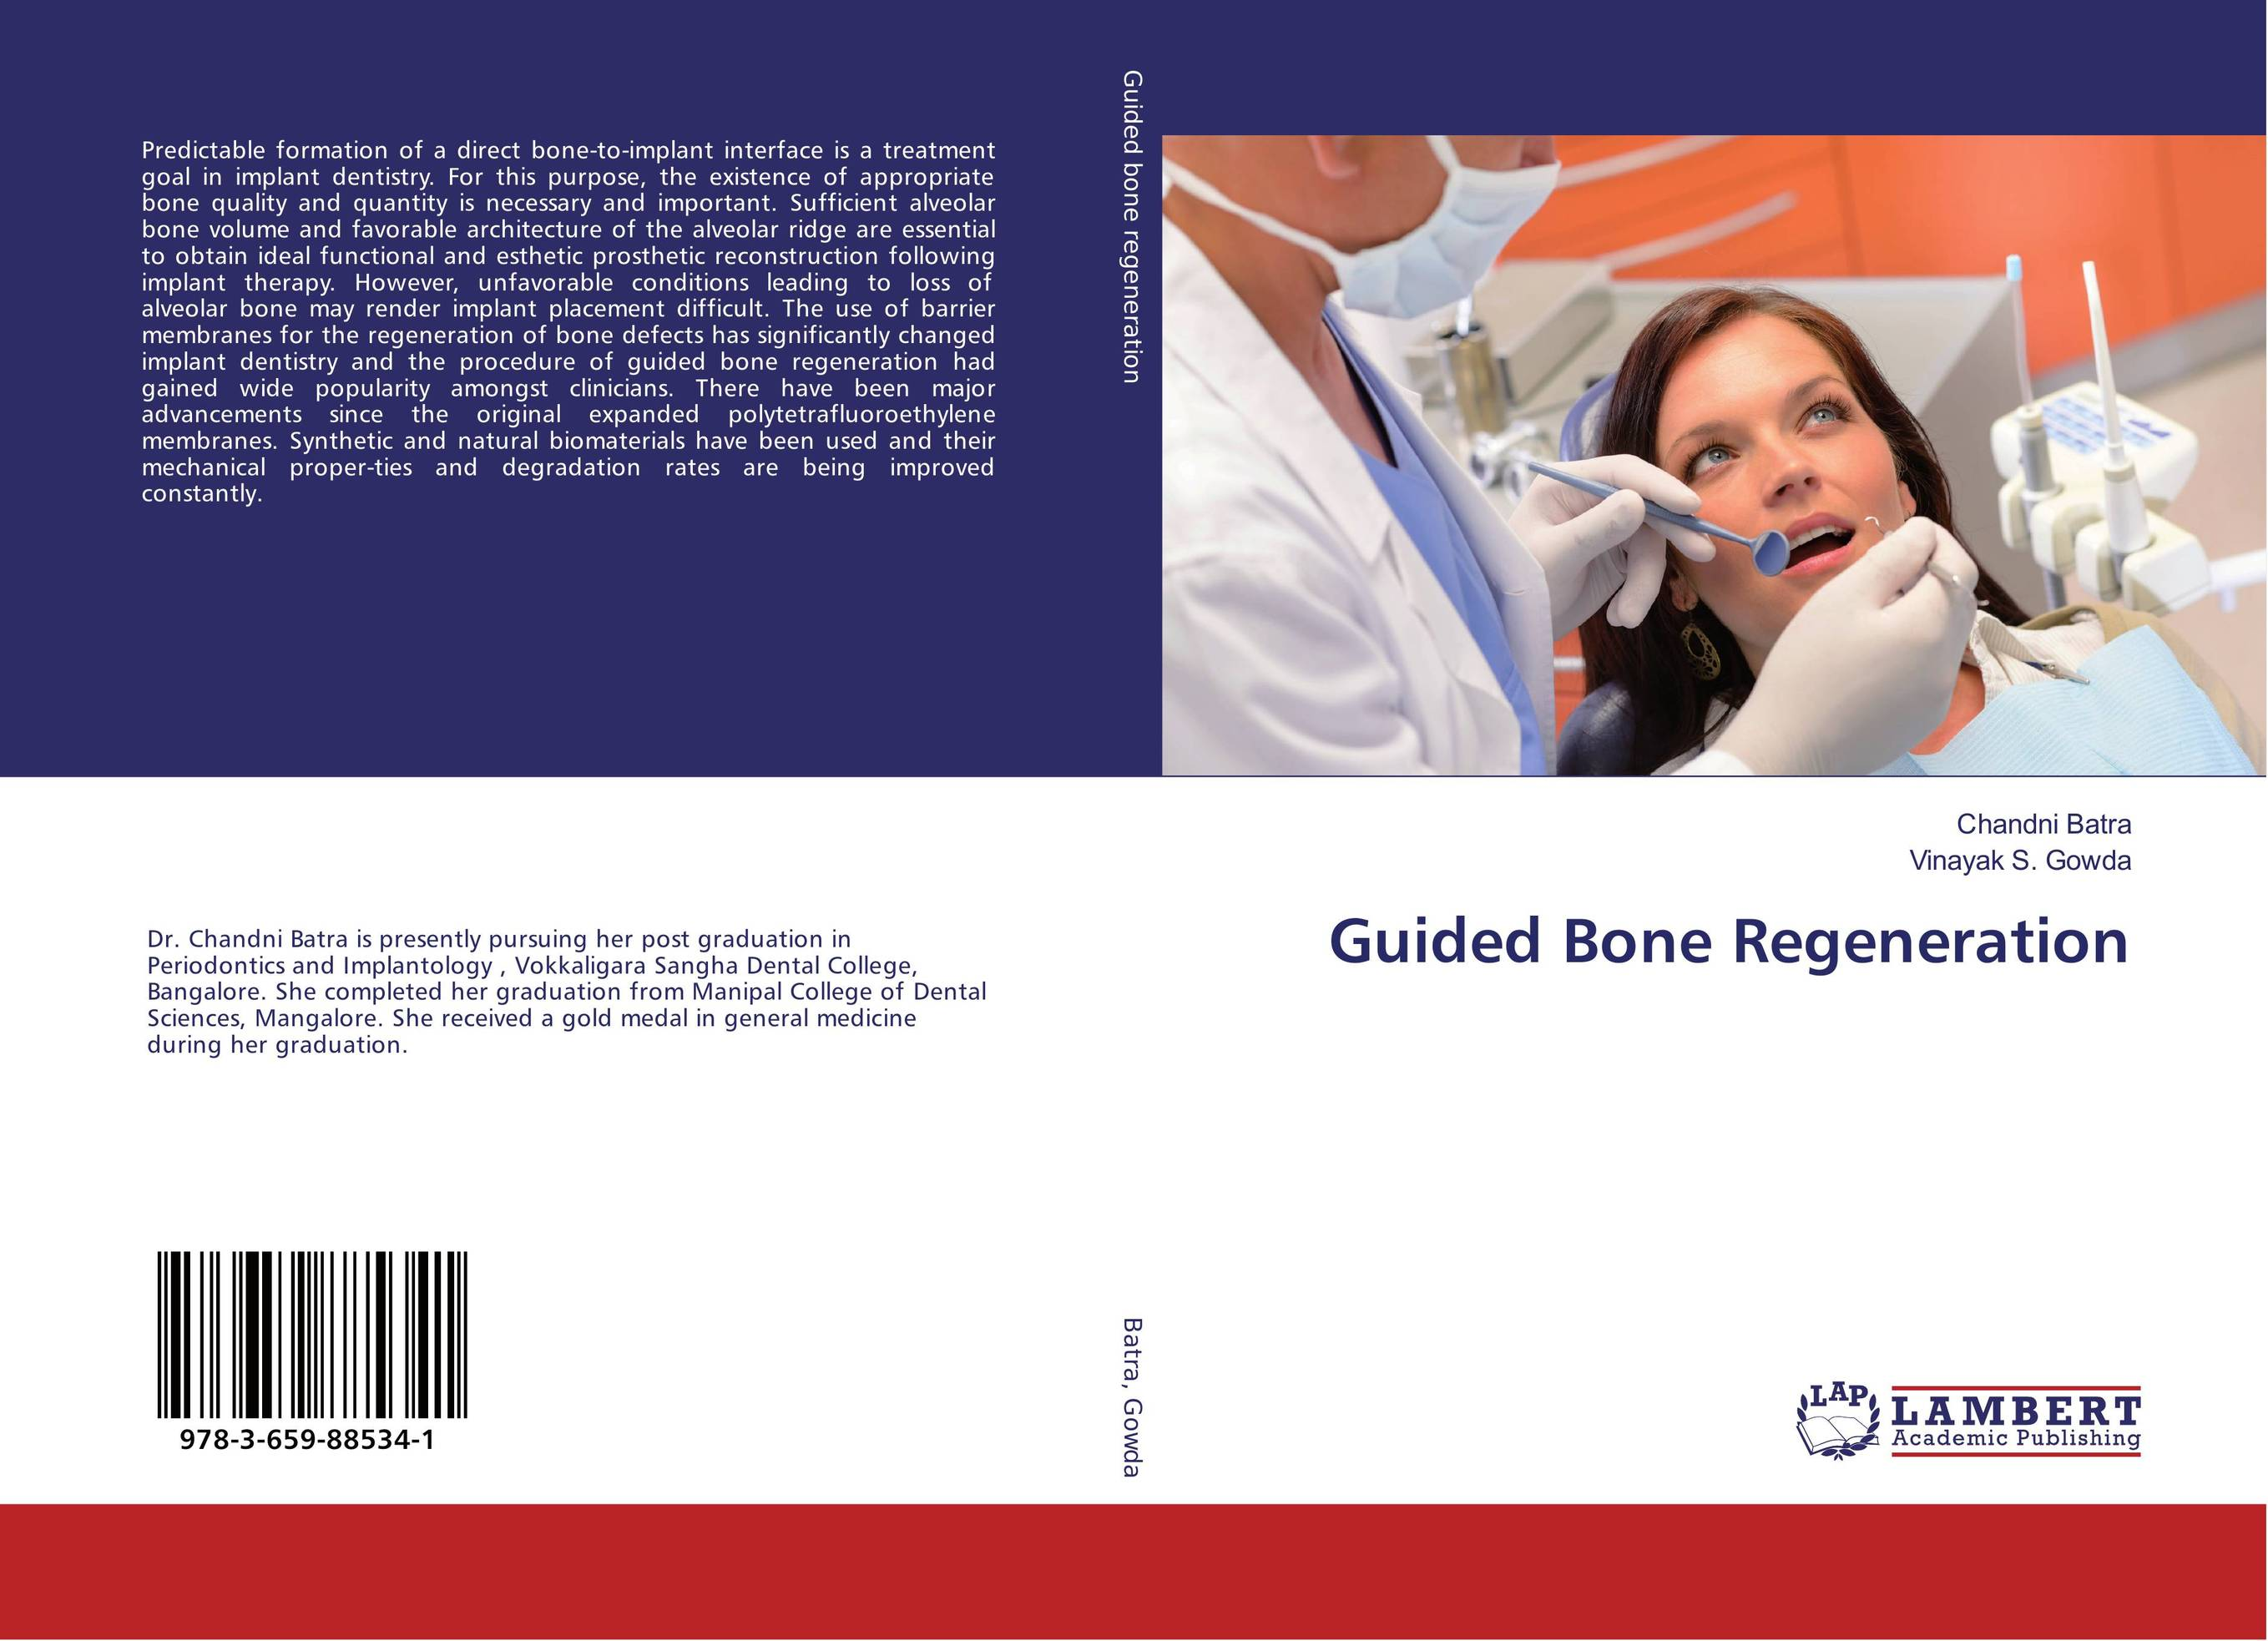 Guided Bone Regeneration esthetics in implant dentistry